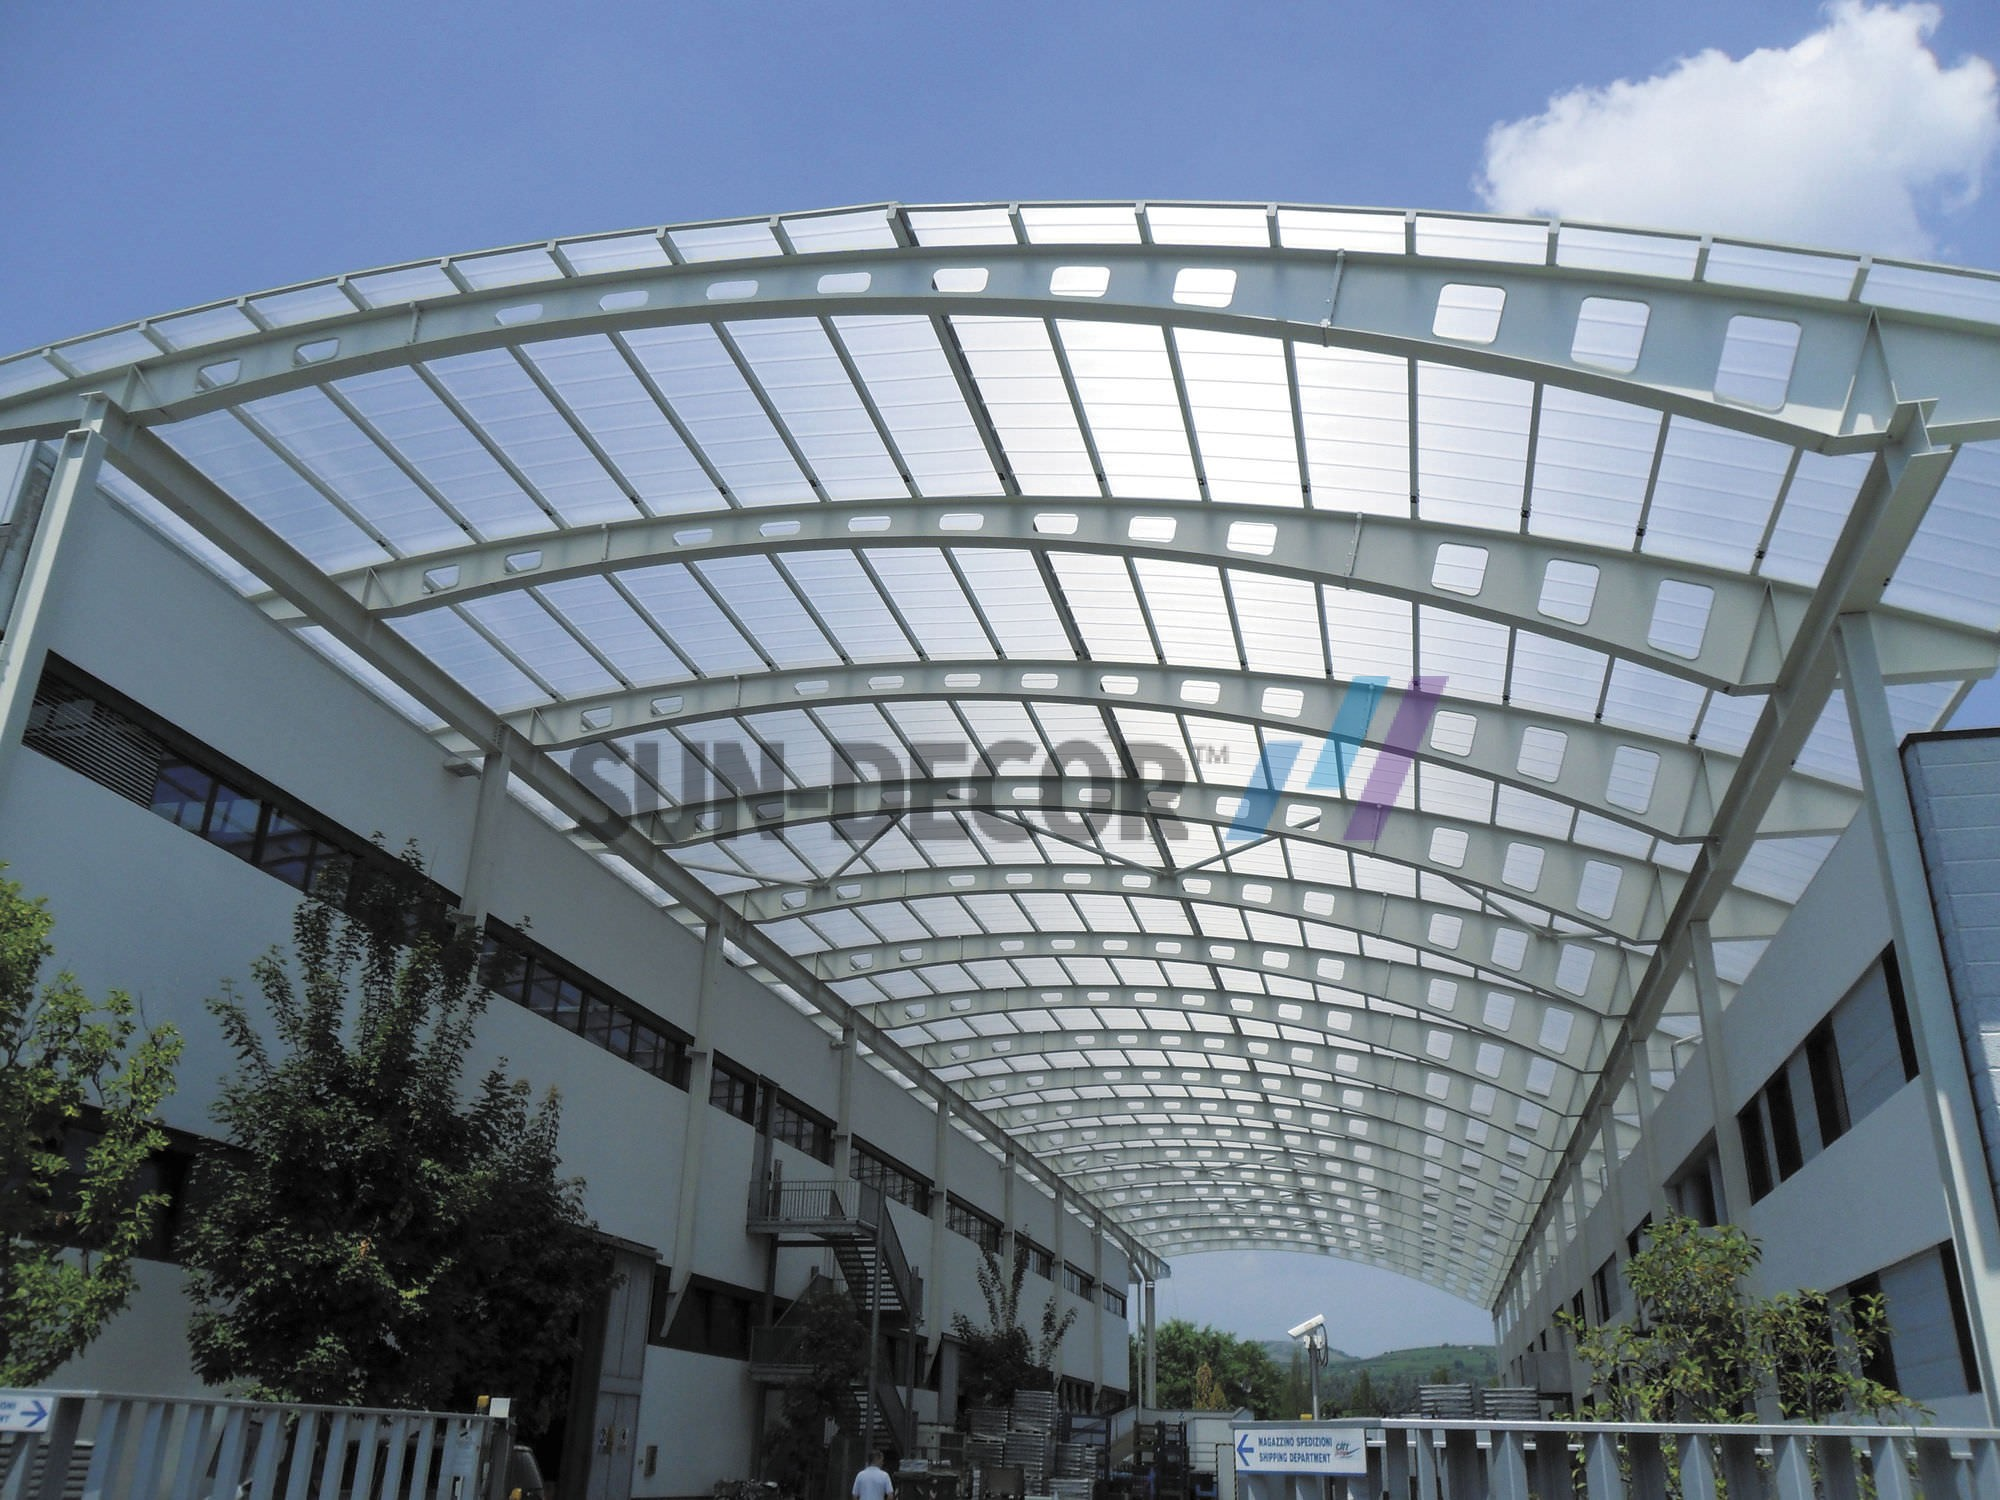 POLYCARBONATE-SHEETS-USED-AS-SKYLIGHT